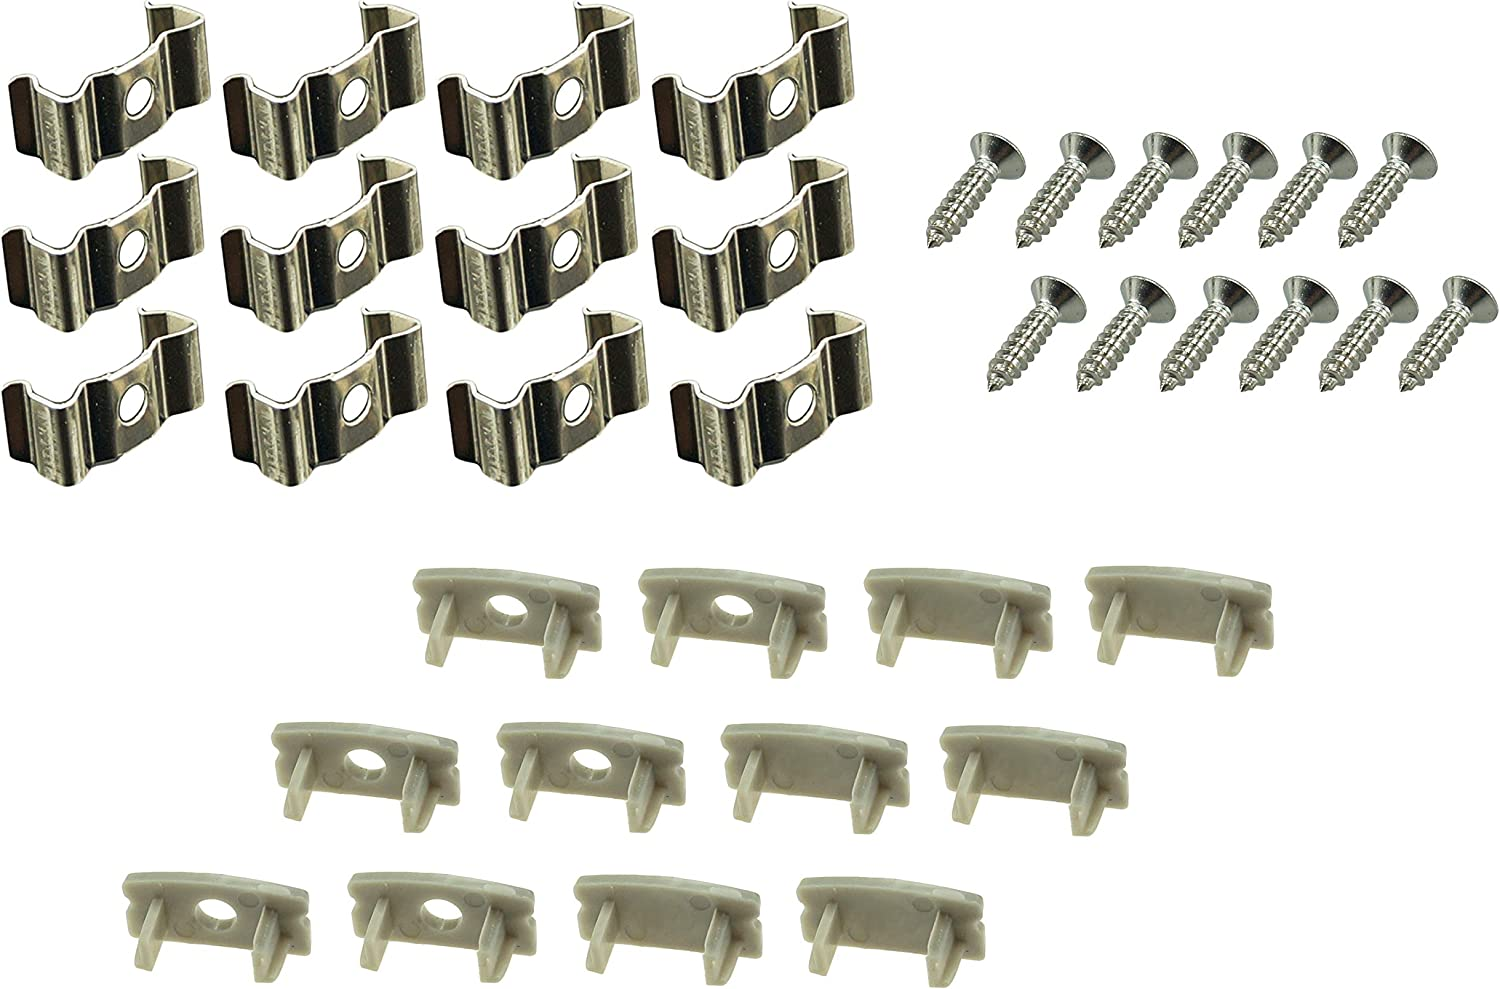 Muzata LED Channel Mounting Clips and End Caps Suit for Most U Shape Aluminum Channel in The Market,12-Pack LCU1,Series LA1